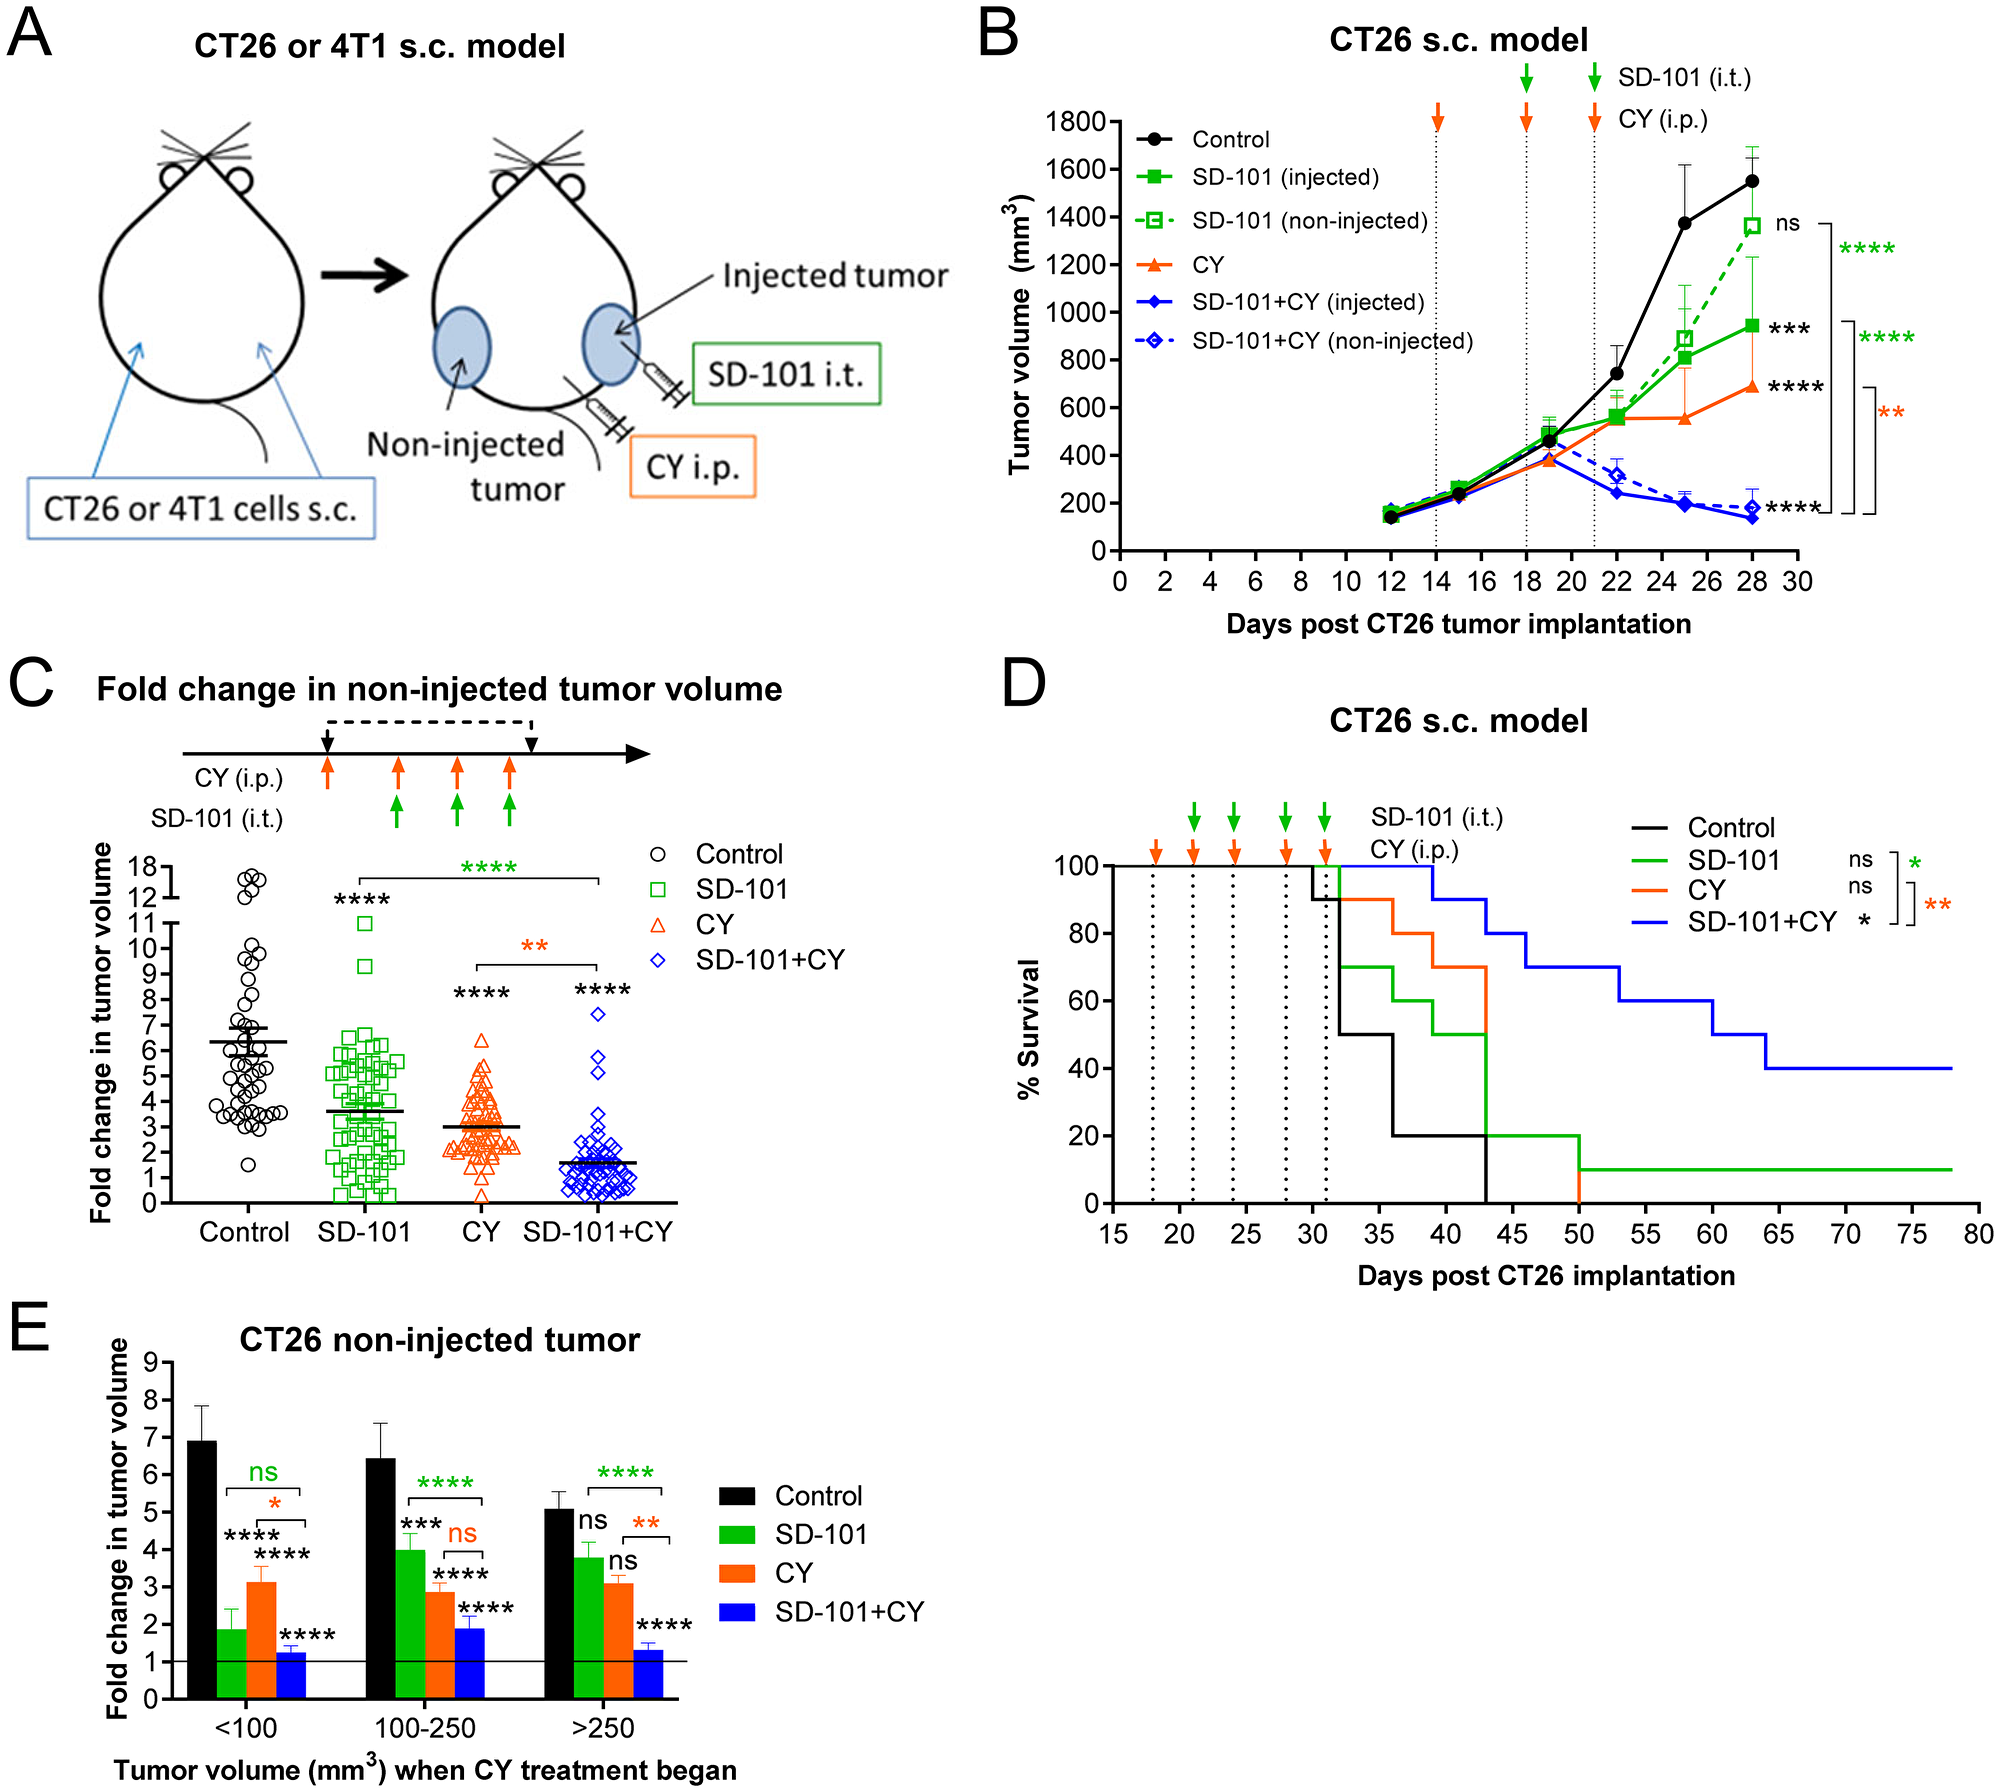 Intratumoral SD-101 combined with low-dose CY effectively inhibits growth of both injected and non-injected tumor sites and promotes survival.